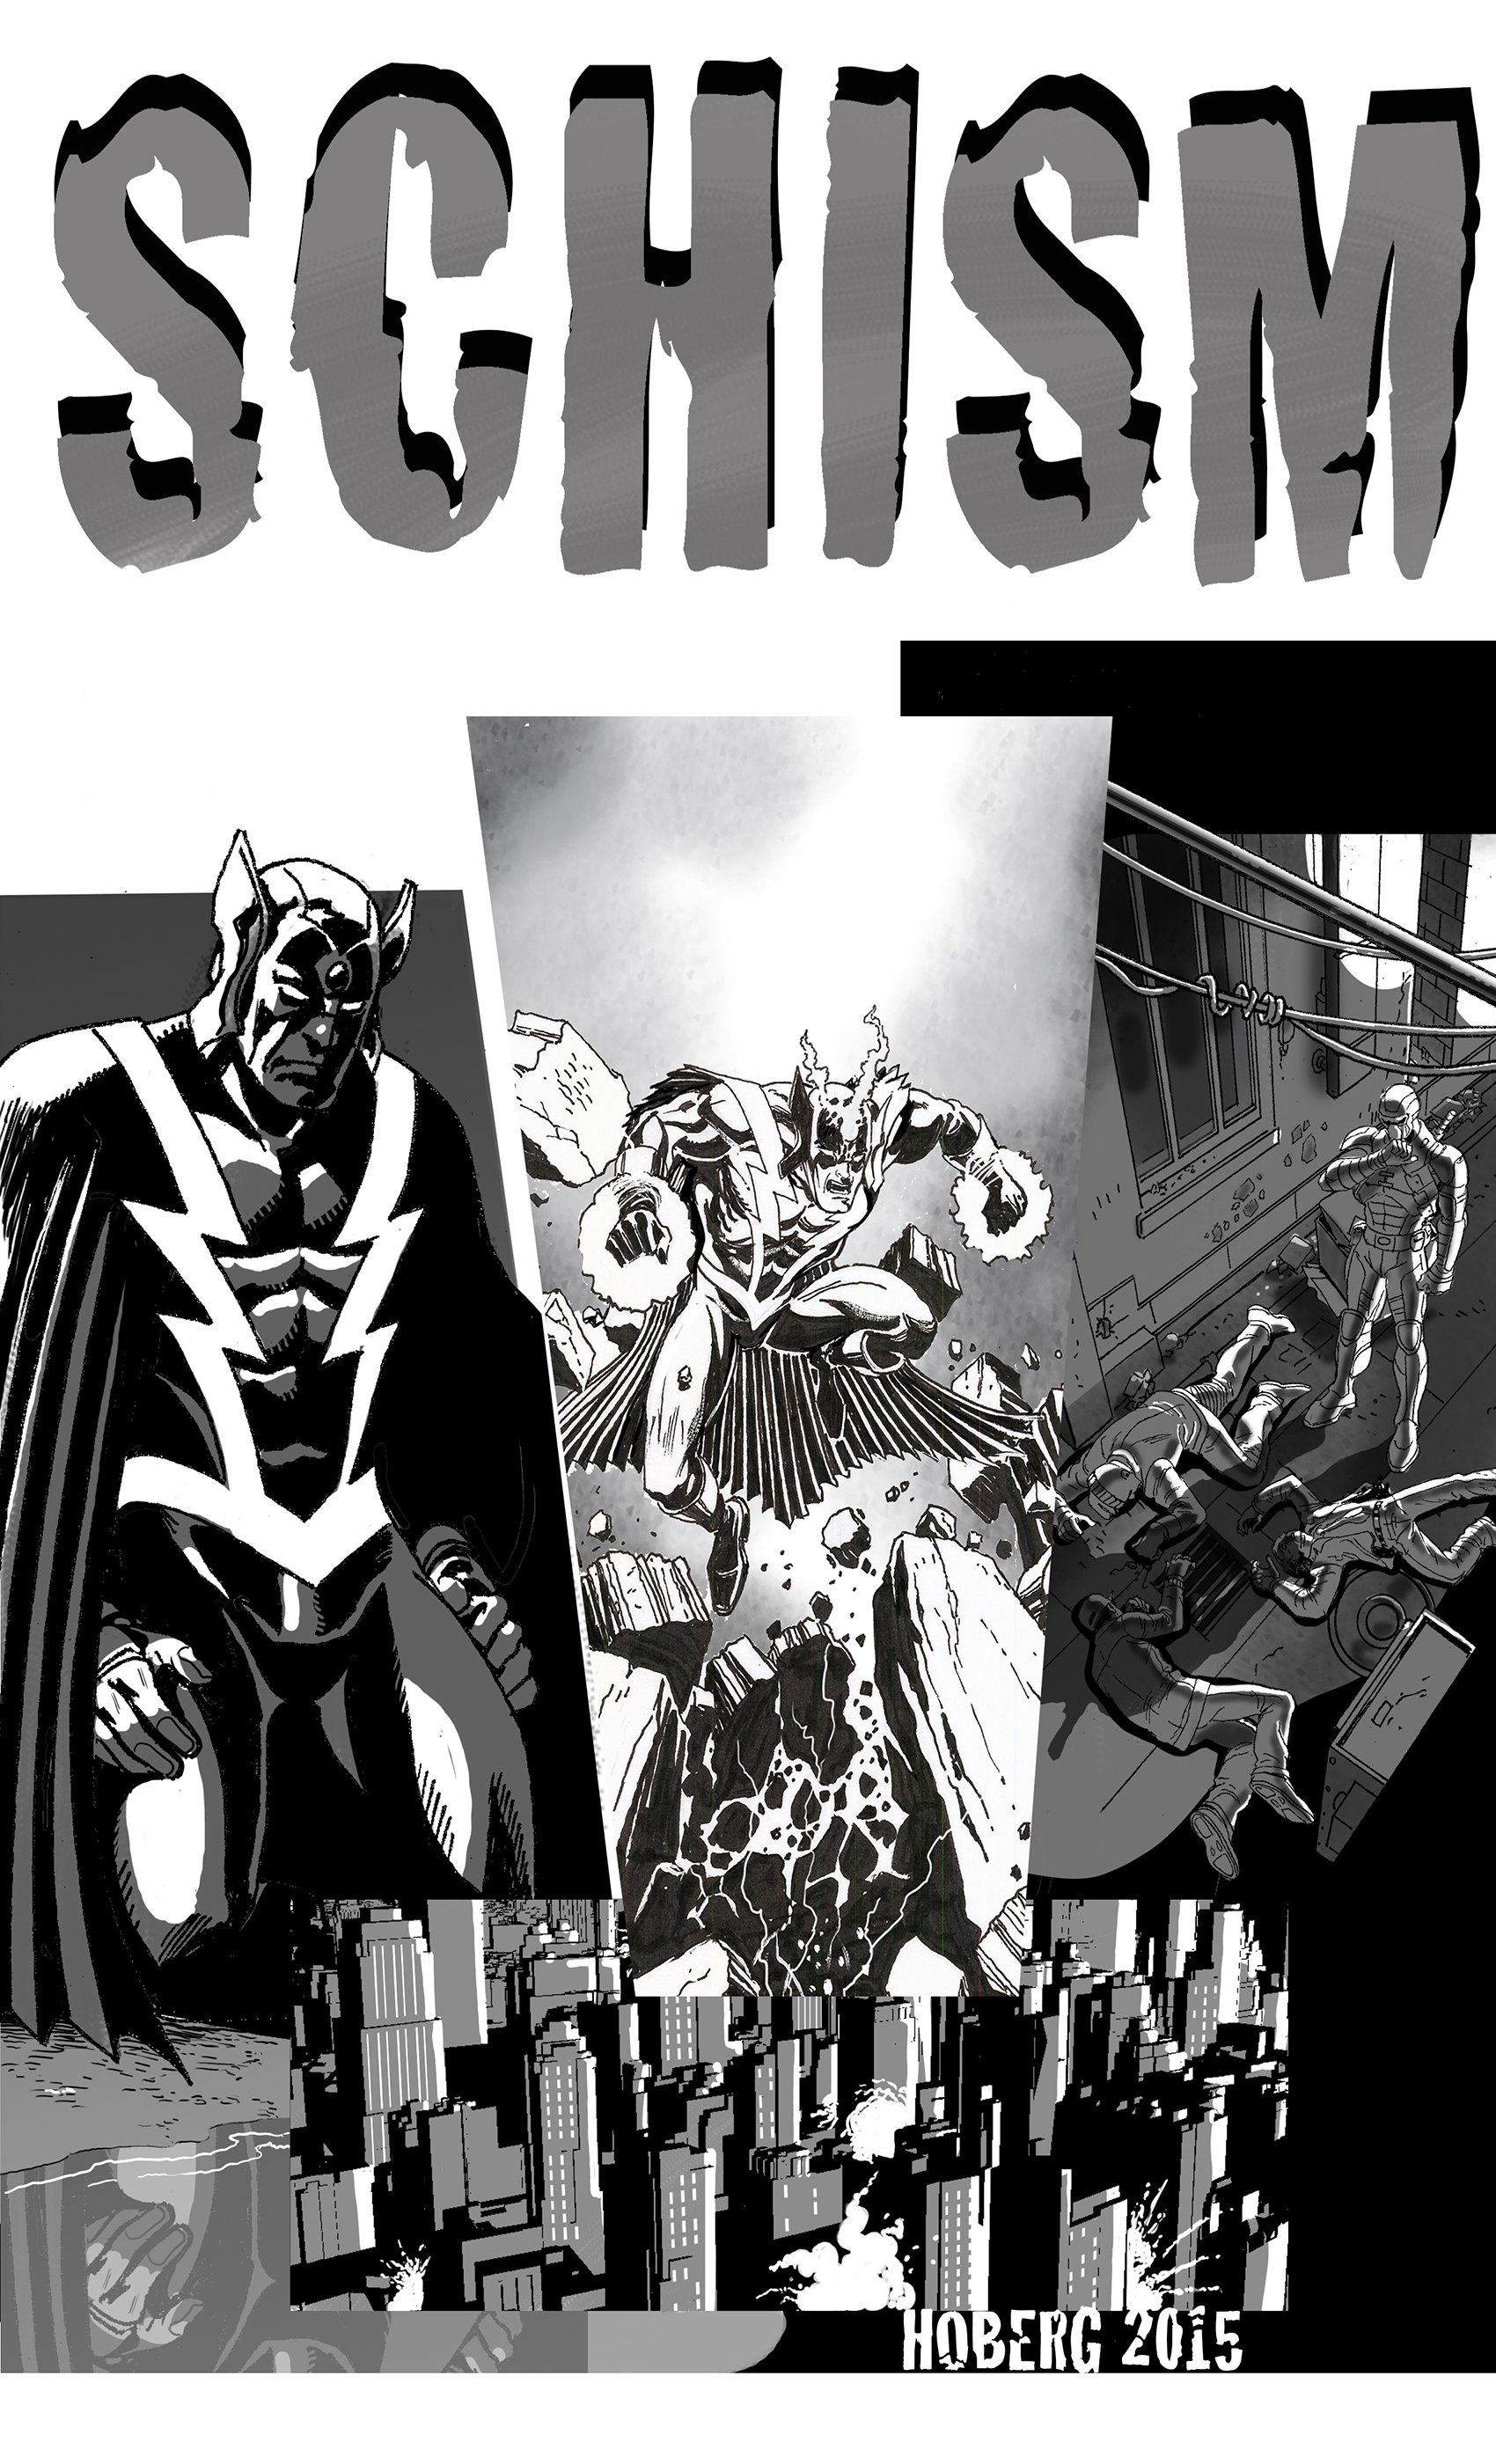 Schism2-CoverRough_Revised01.11.2016